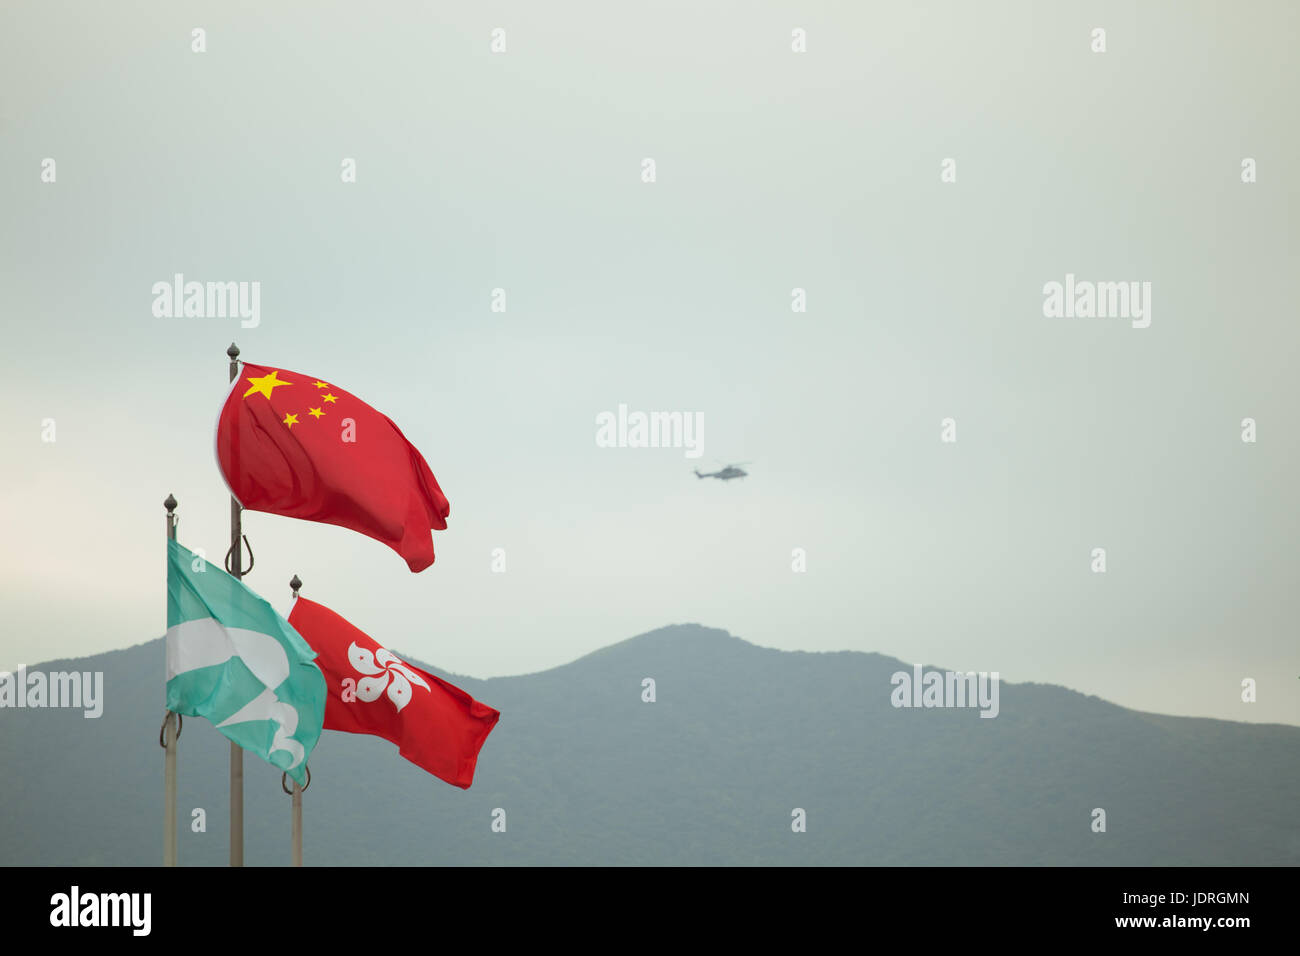 Chinese state flag with Hong Kong SAR flag at Hong Kong international airport with helicopter flying in background - Stock Image